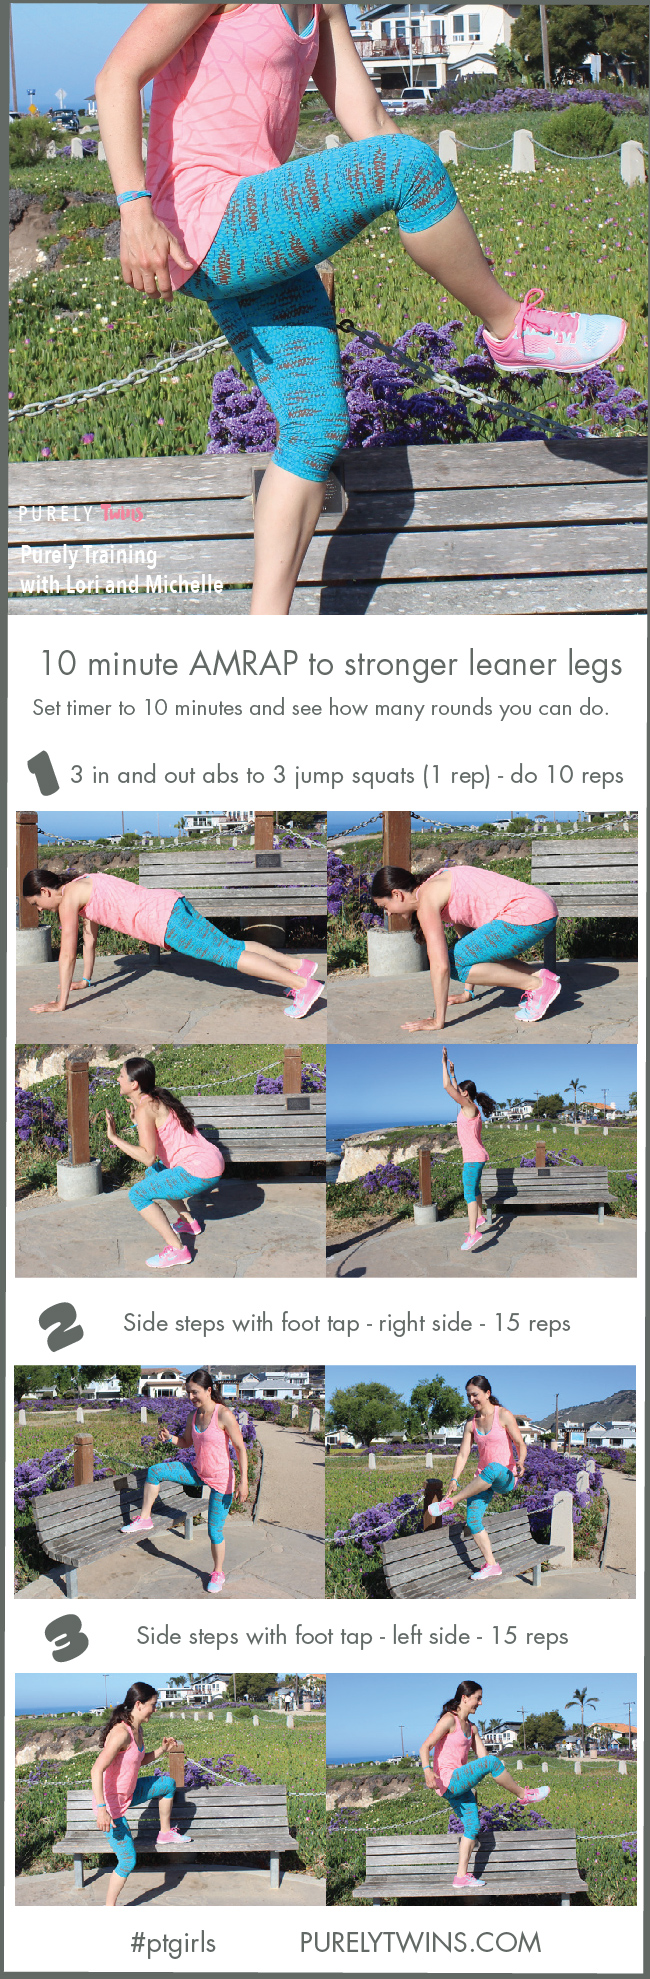 Ladies are you ready to get stronger leaner legs? This new workout is only 10 minutes. A bodyweight workout you can do anywhere including outside! Next time you are at the park do this workout.